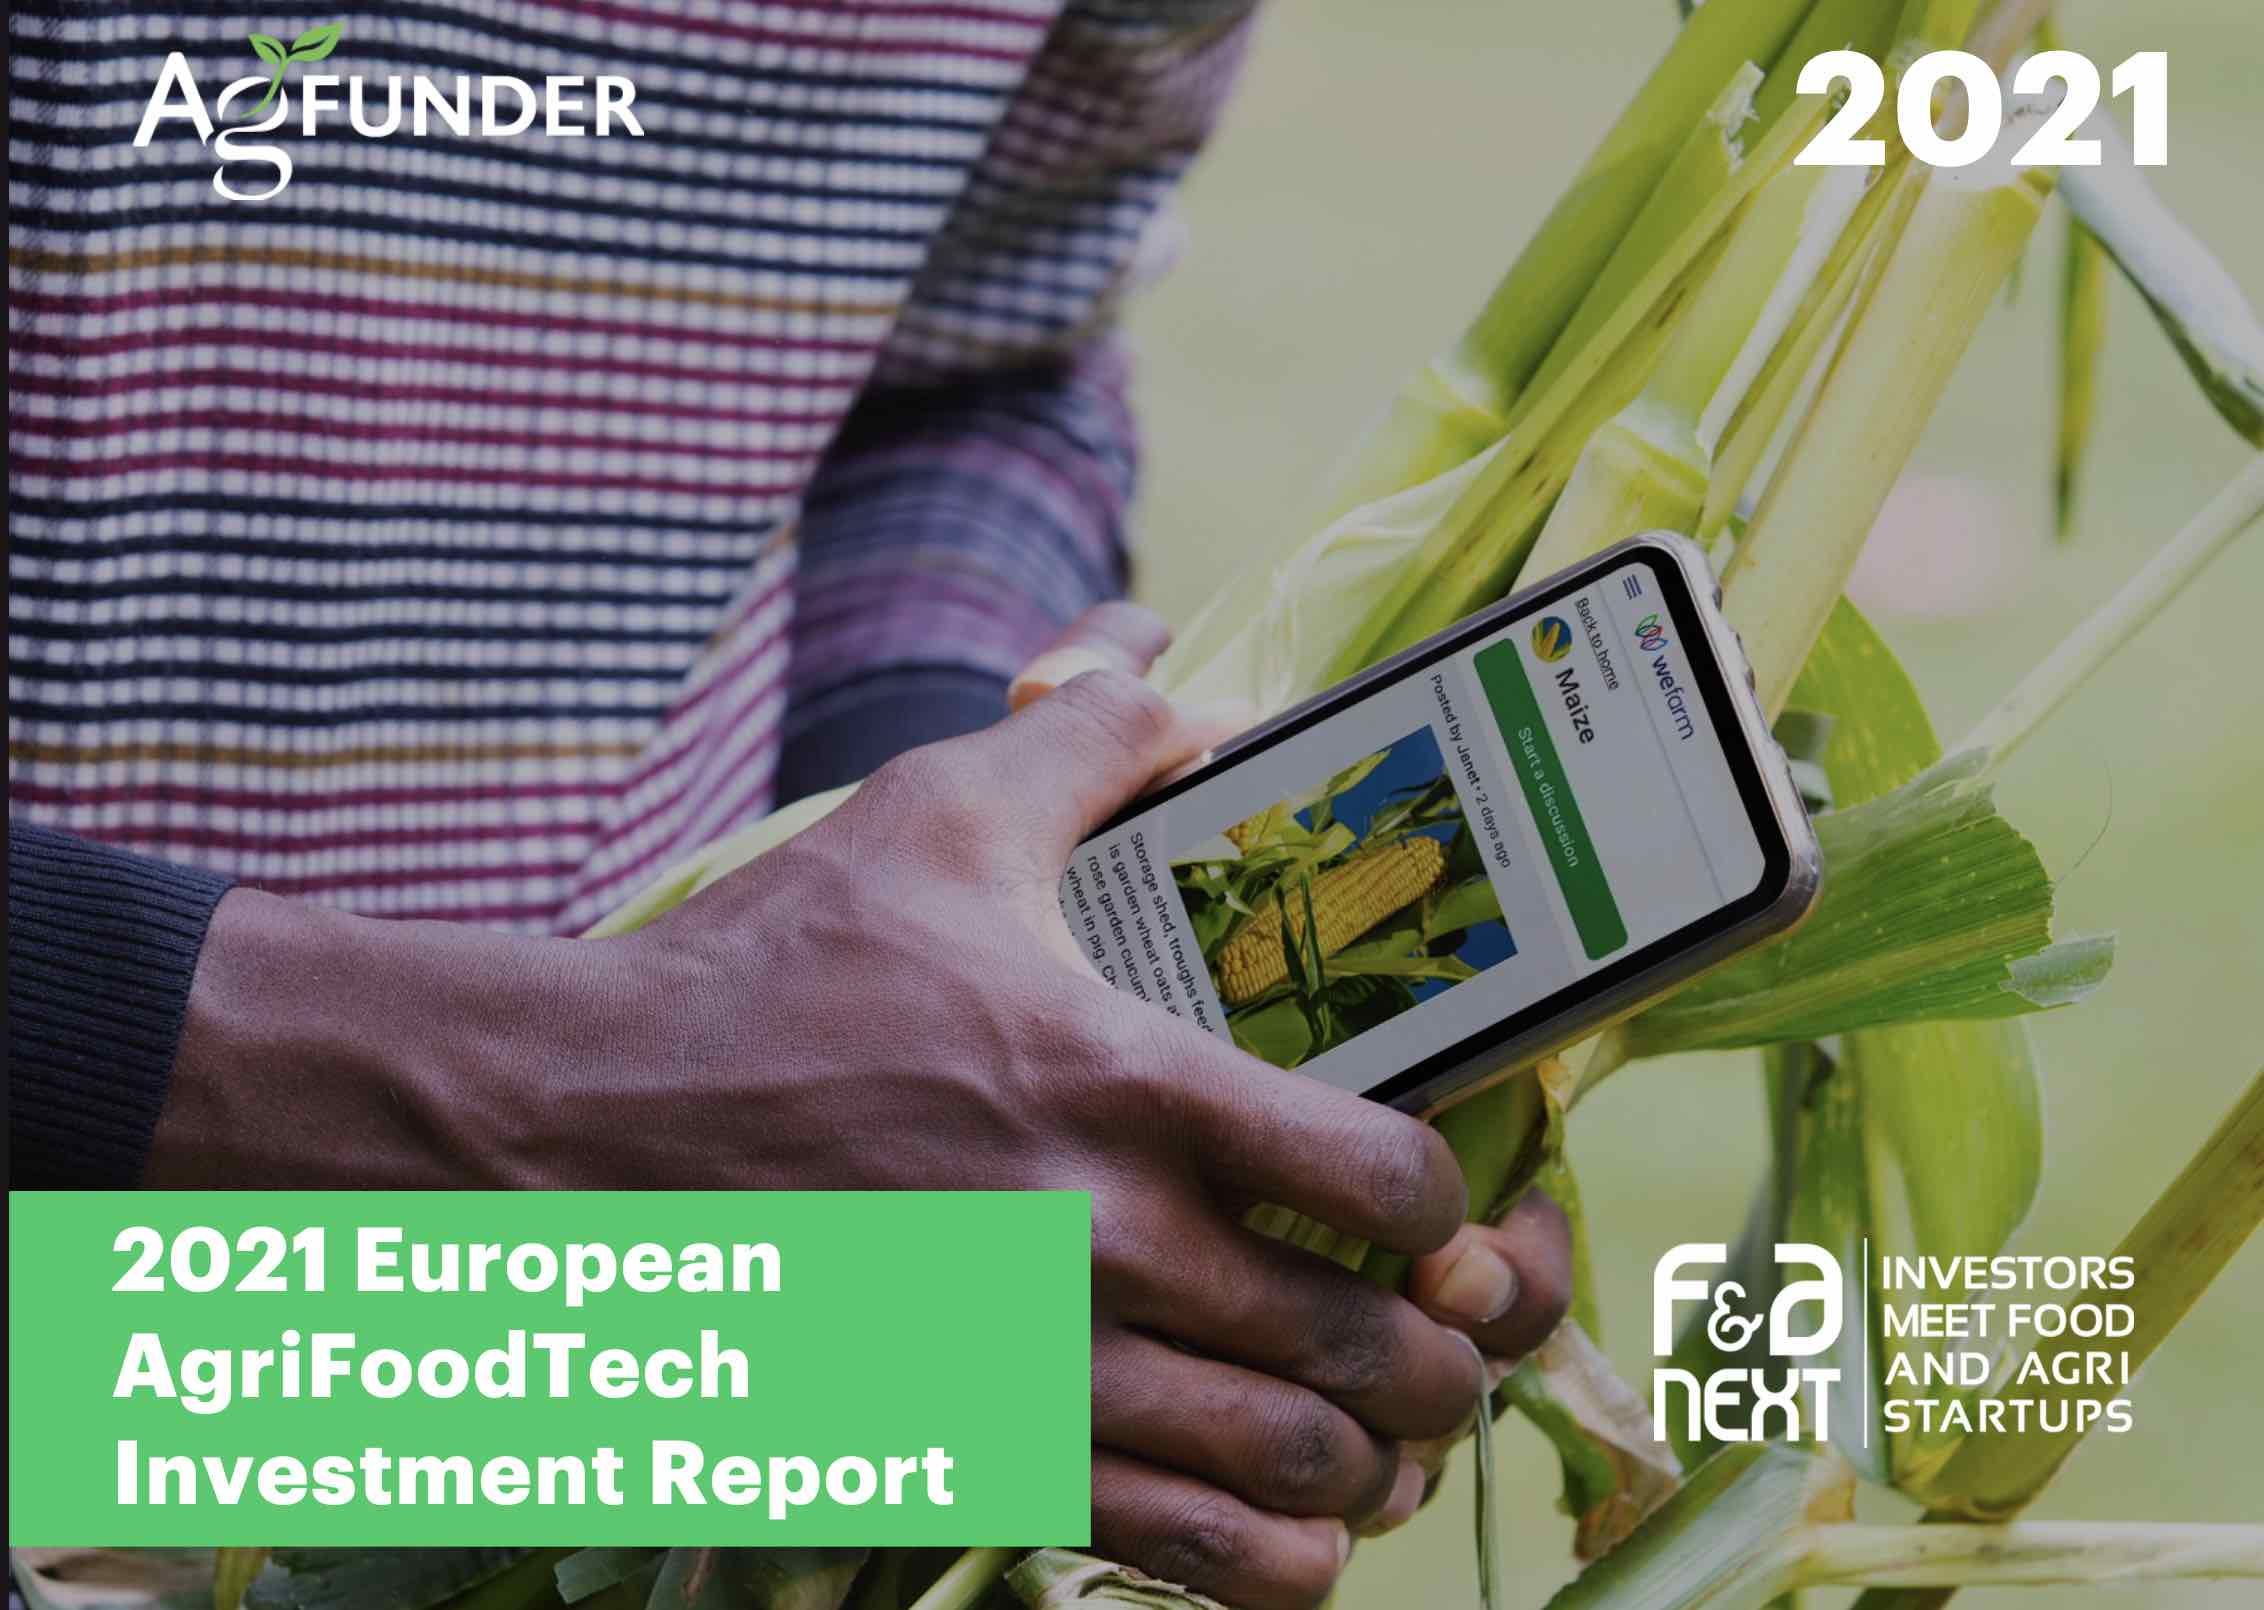 Europe 2021 AgriFoodTech Investment Report